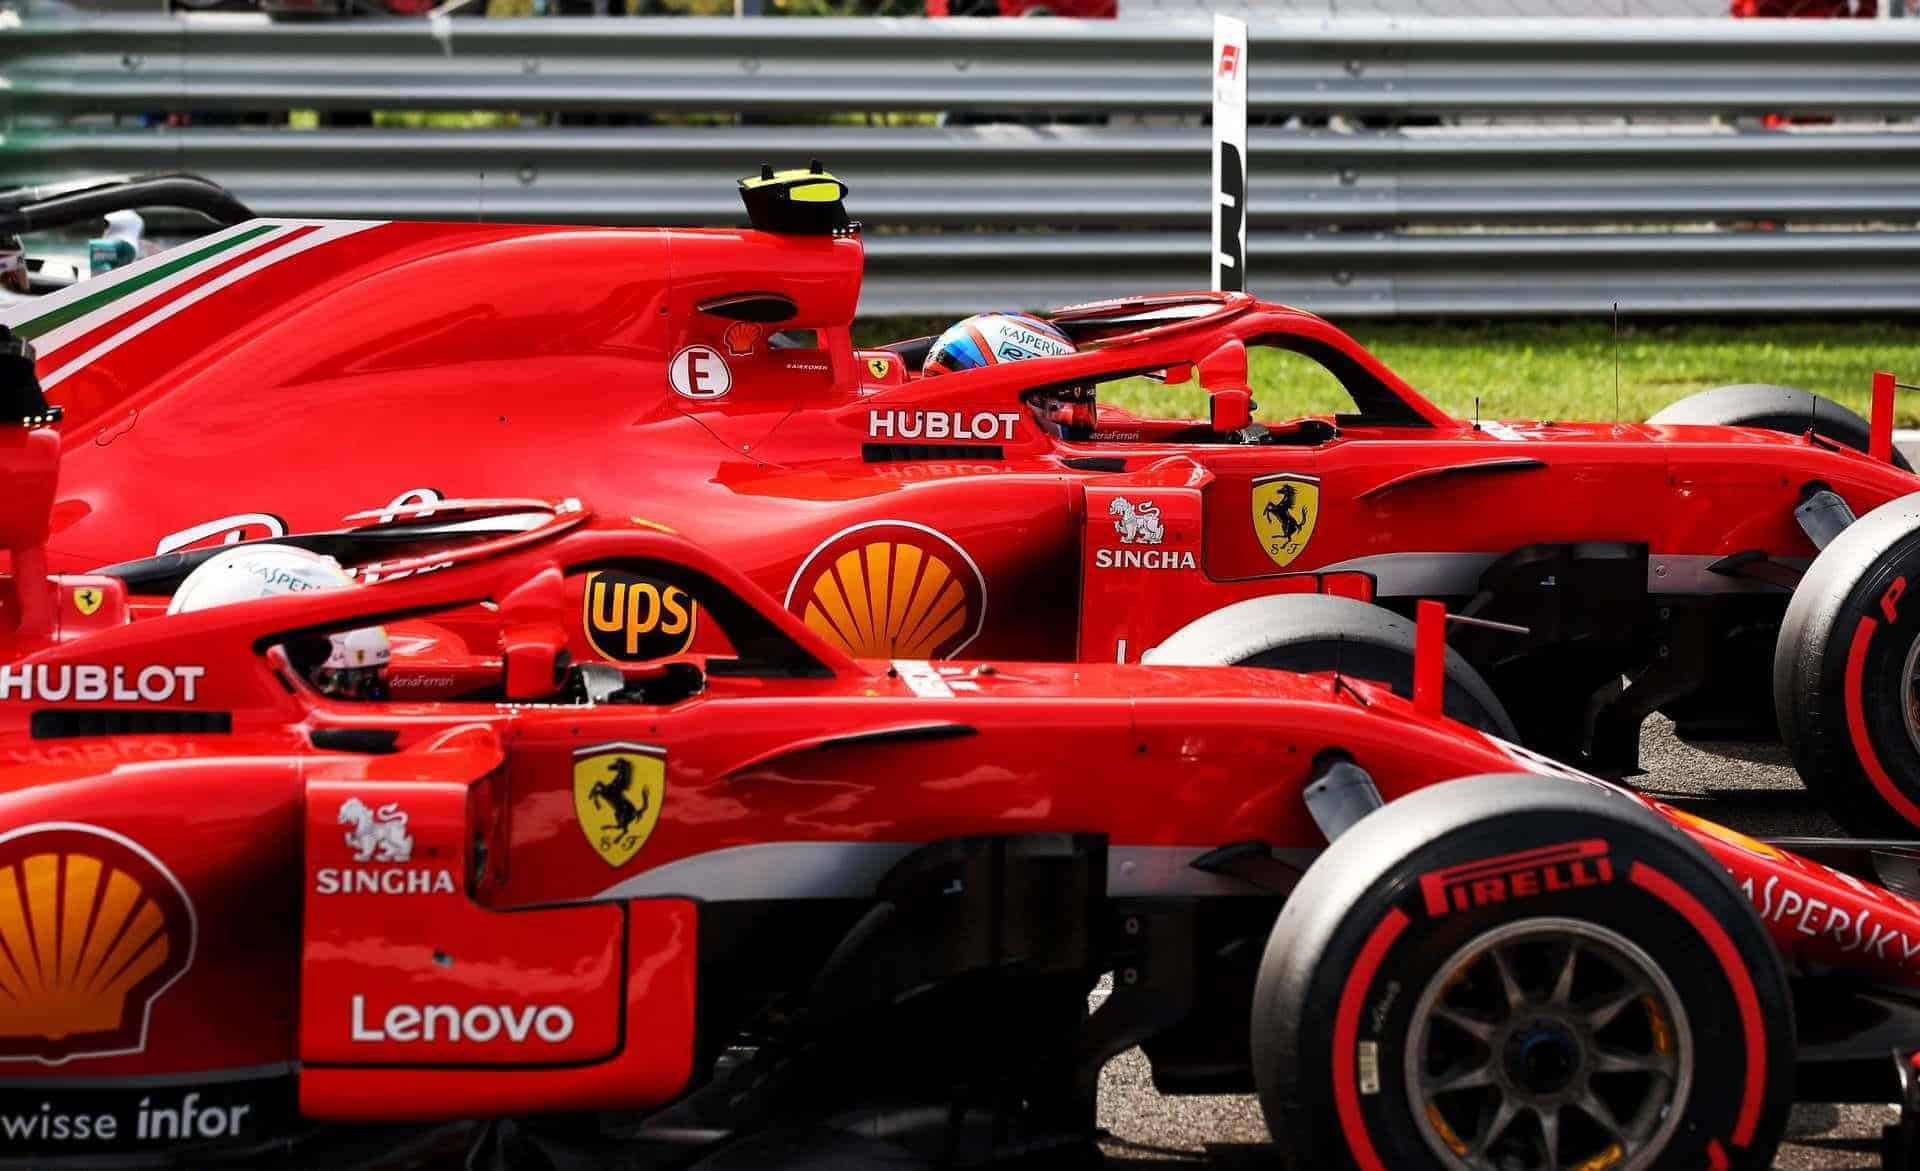 Raikkonen Vettel Ferrari Ferrari SF71H Italian GP F1 2018 post qualifying on track Photo Ferrari